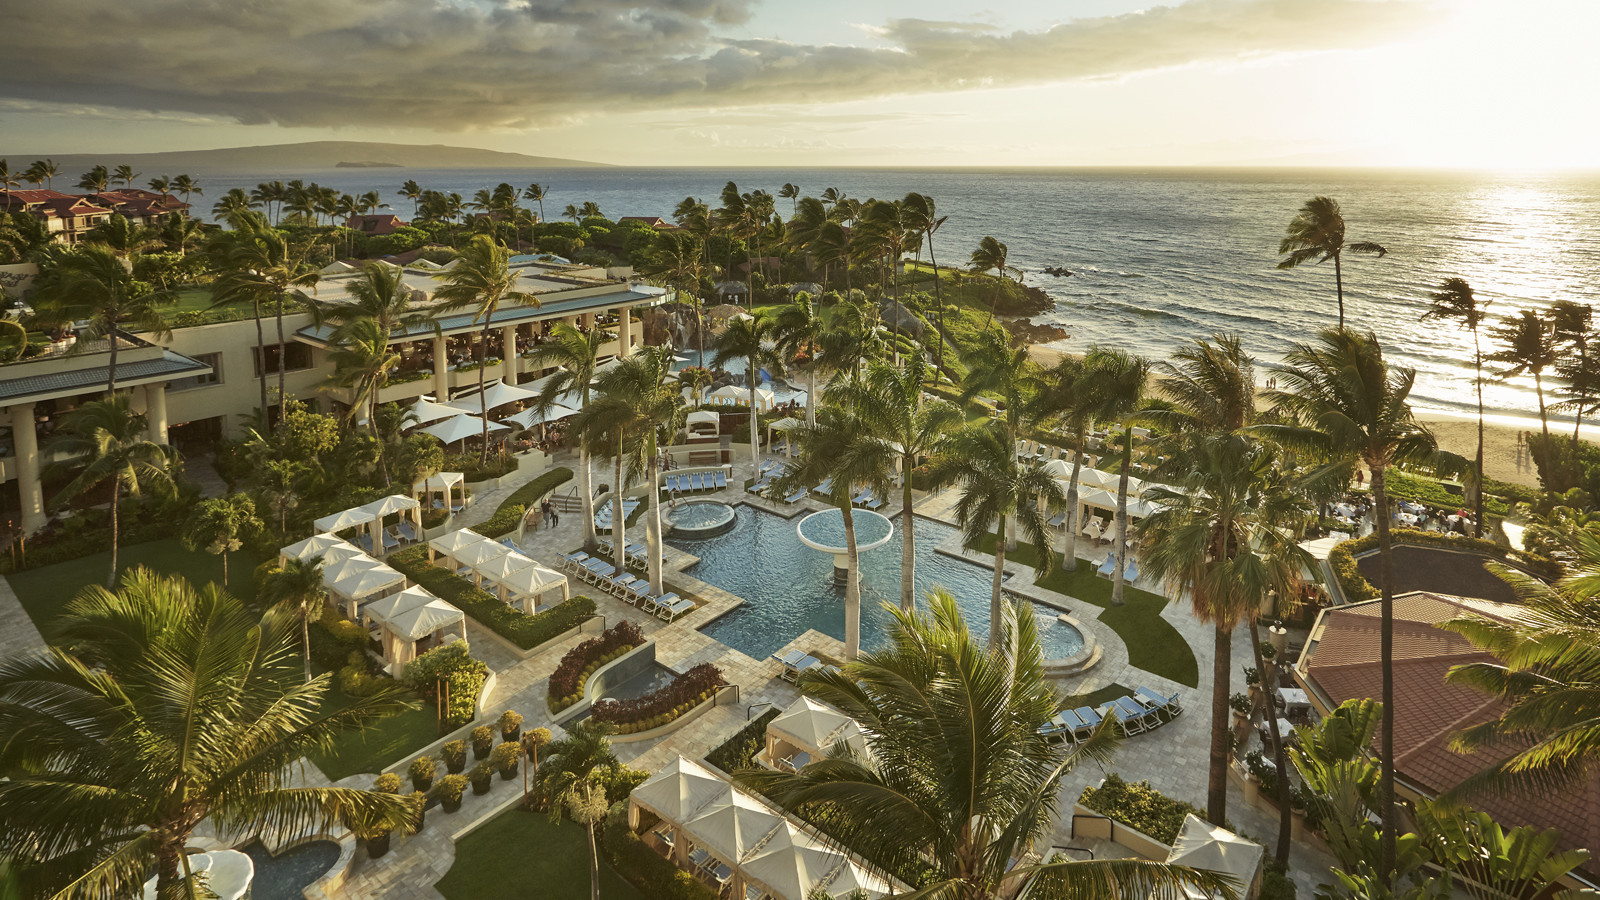 news-main-the-hawaiian-collection-of-resorts-aims-to-bring-a-piece-of-hawaii-into-the-hearts-and-homes-of-its-guests.1586256329.jpg